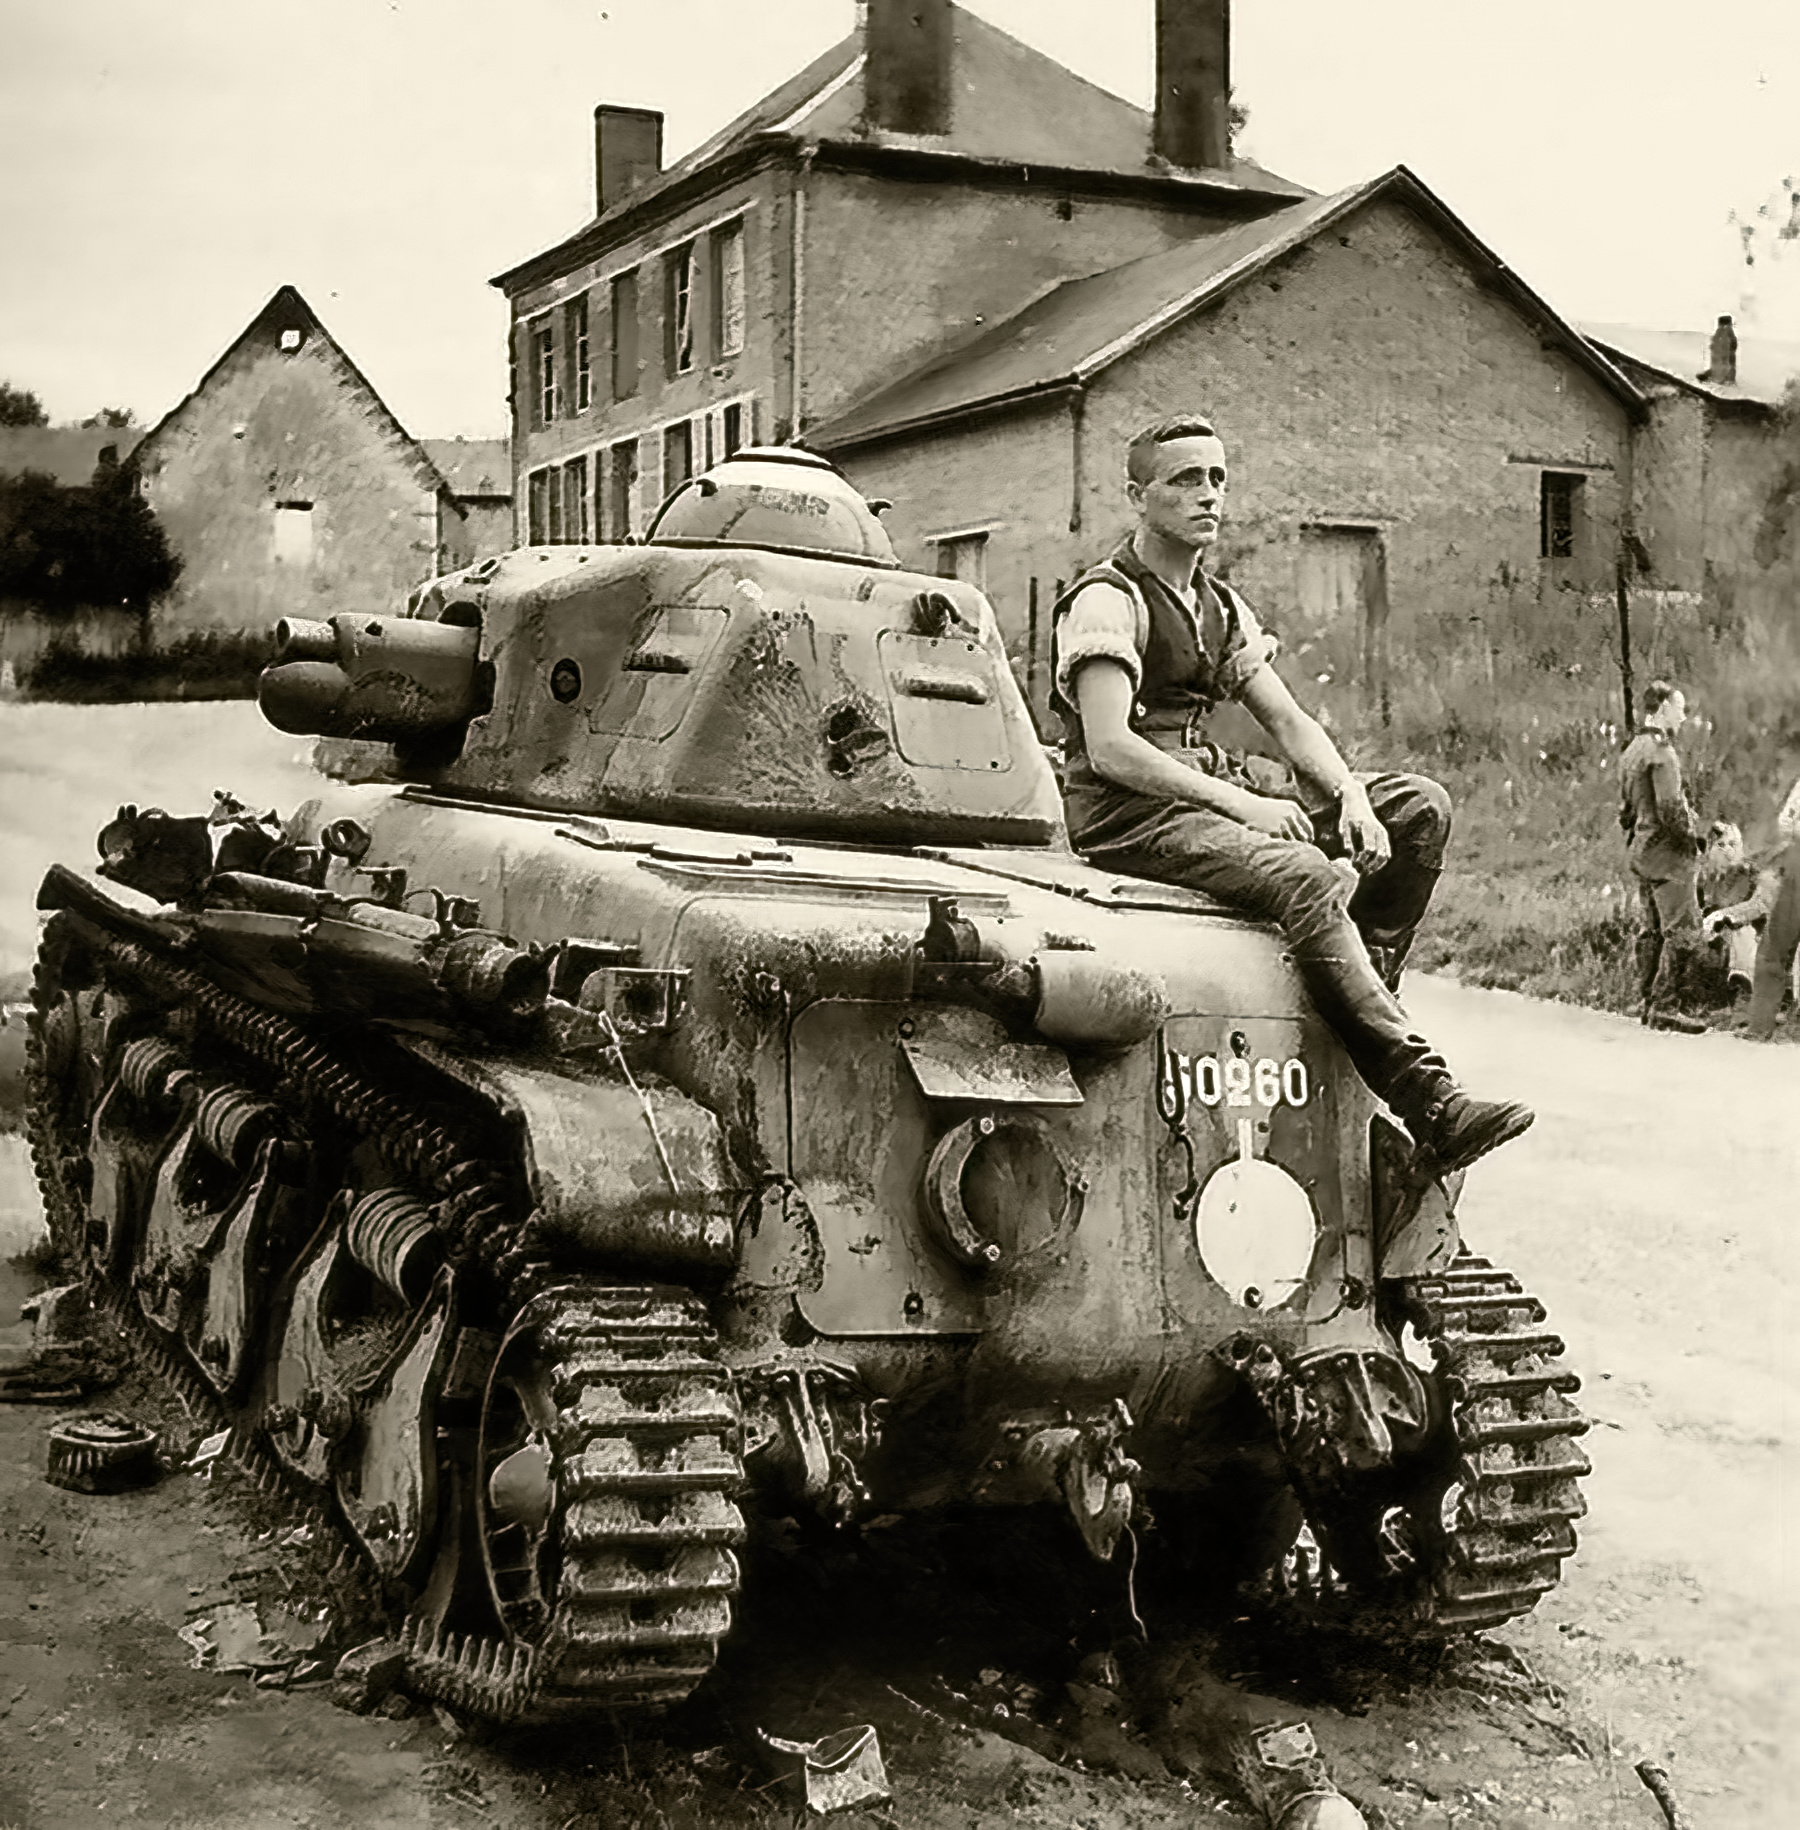 French Army Renault R35 support tank 24eme Bataillon snI50260 knocked France 1940 web 01